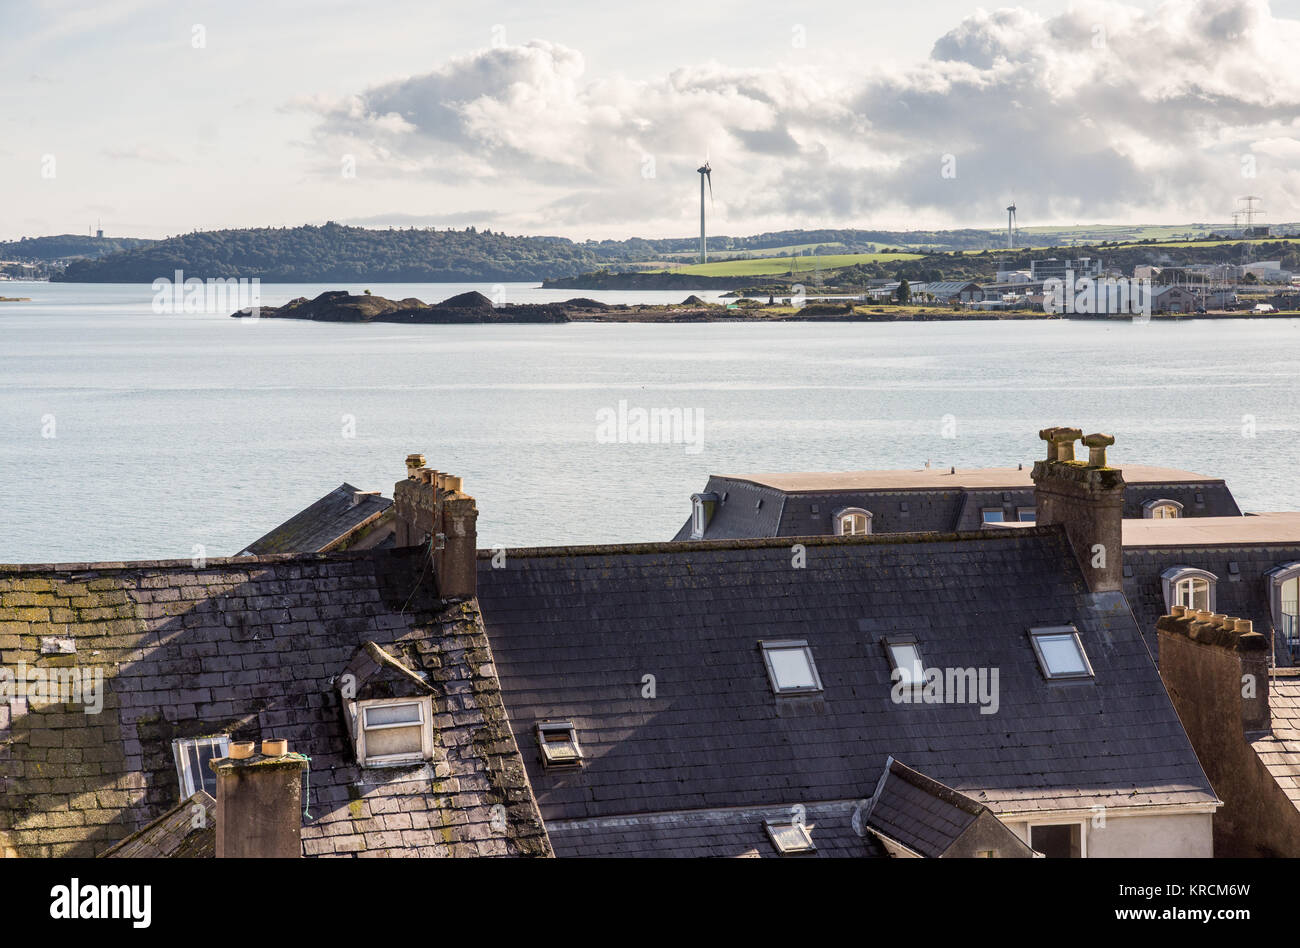 Cork Harbour and Haulbowline Island Naval Base viewed from Cobh. - Stock Image